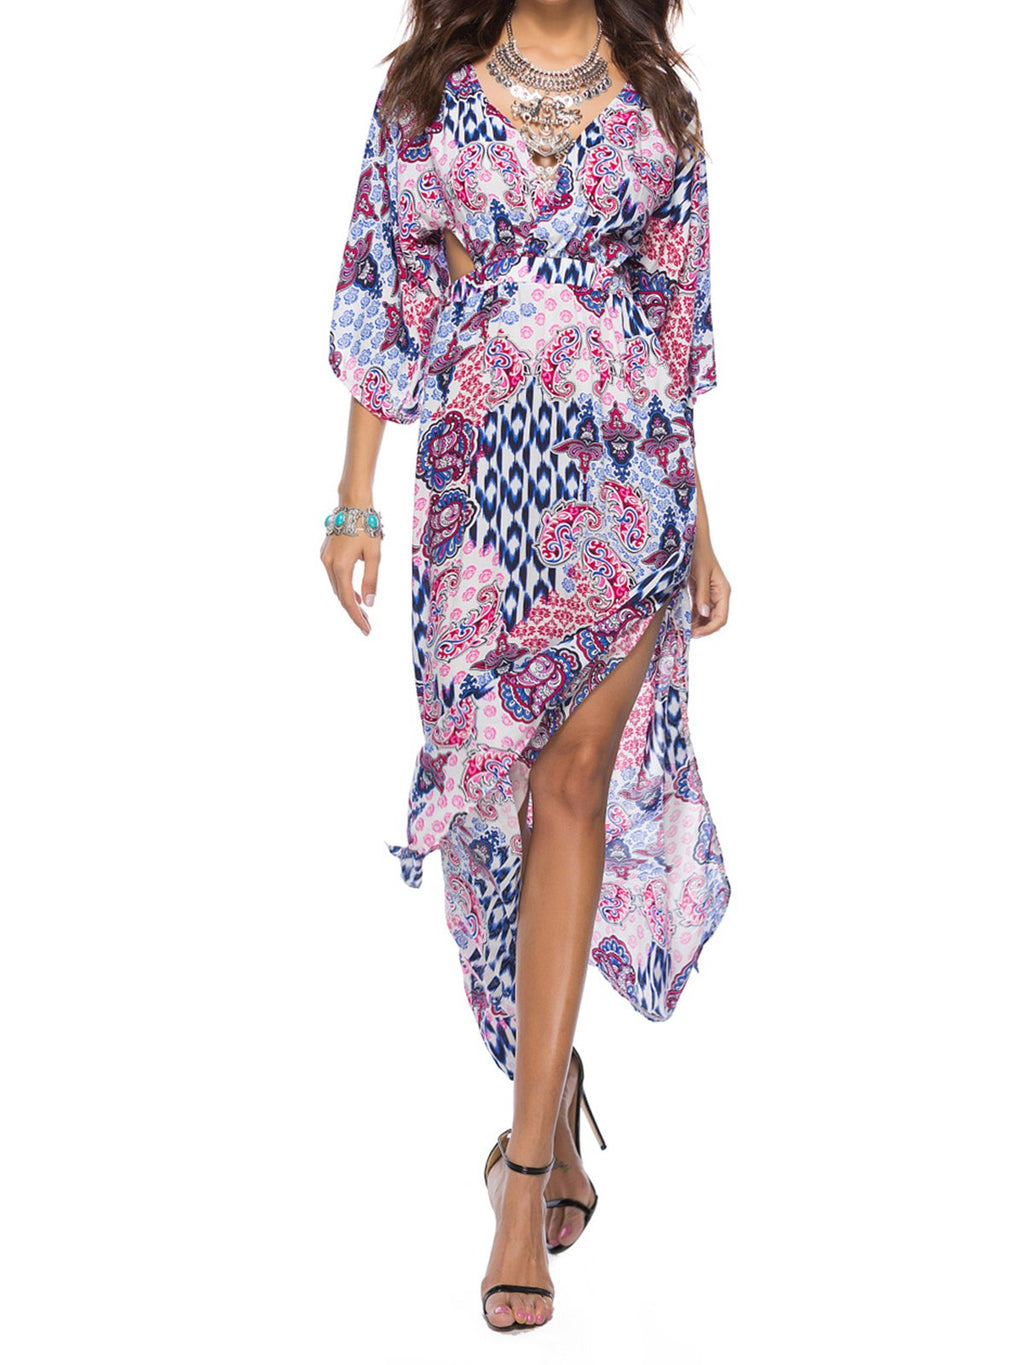 Bohemia Slit Backless Batwing Sleeve Printed Maxi Holiday Dress